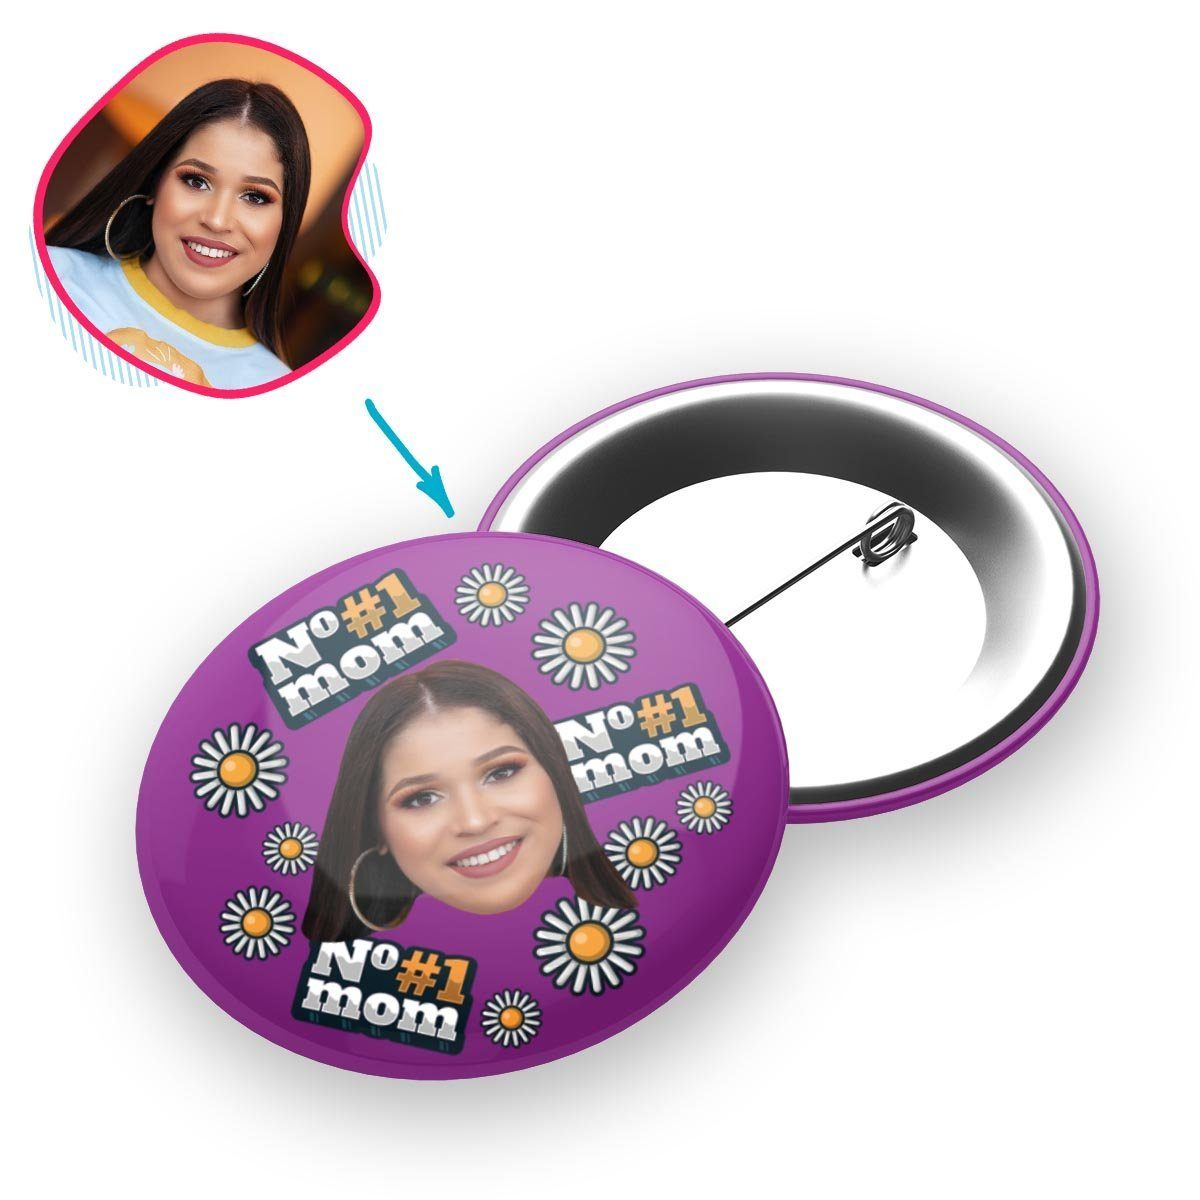 #1 Mom Personalized Pin Button